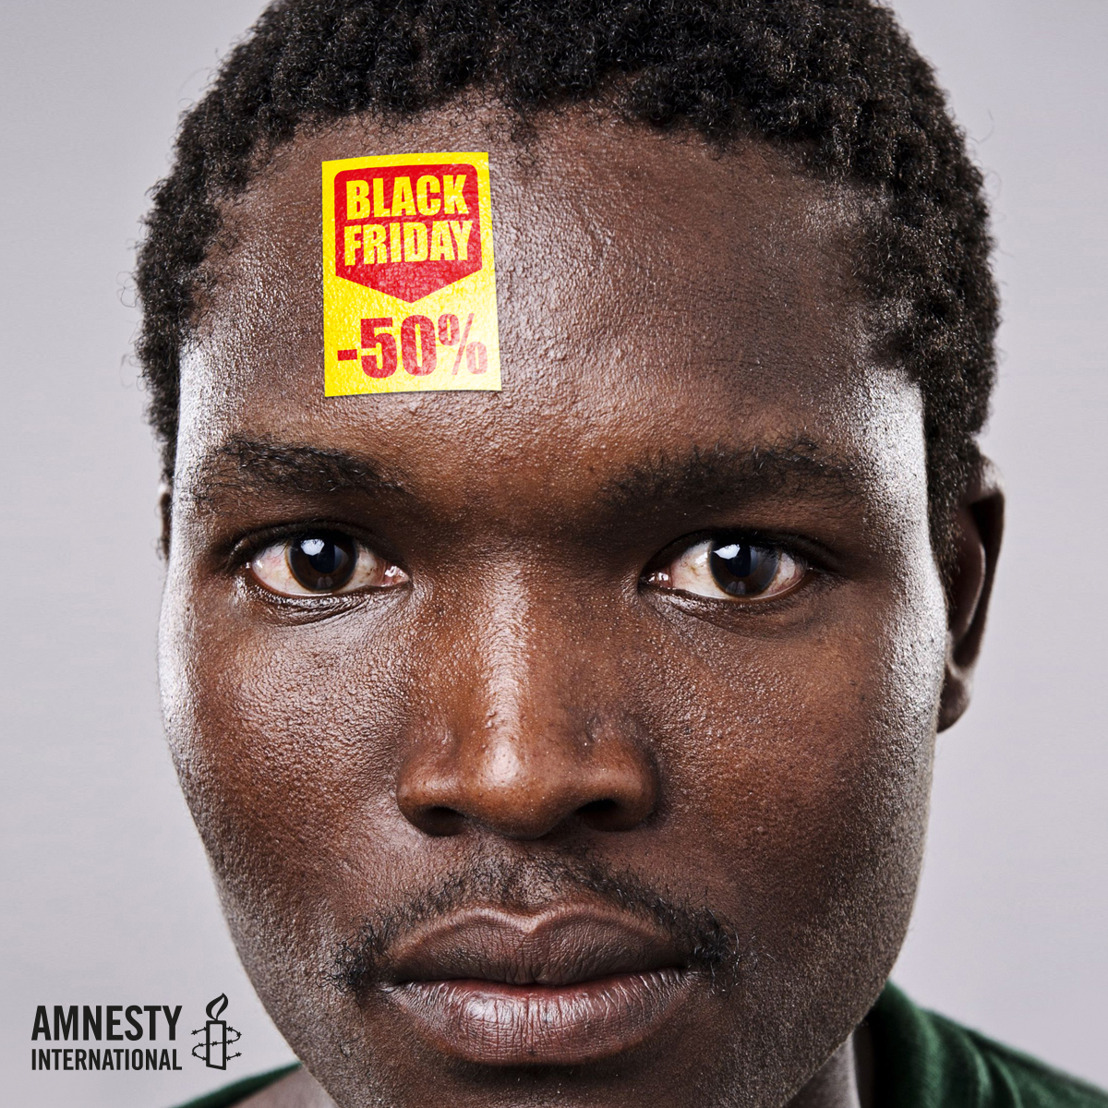 AIR AND AMNESTY GIVE BLACK FRIDAY DISCOUNTS ON SLAVES.